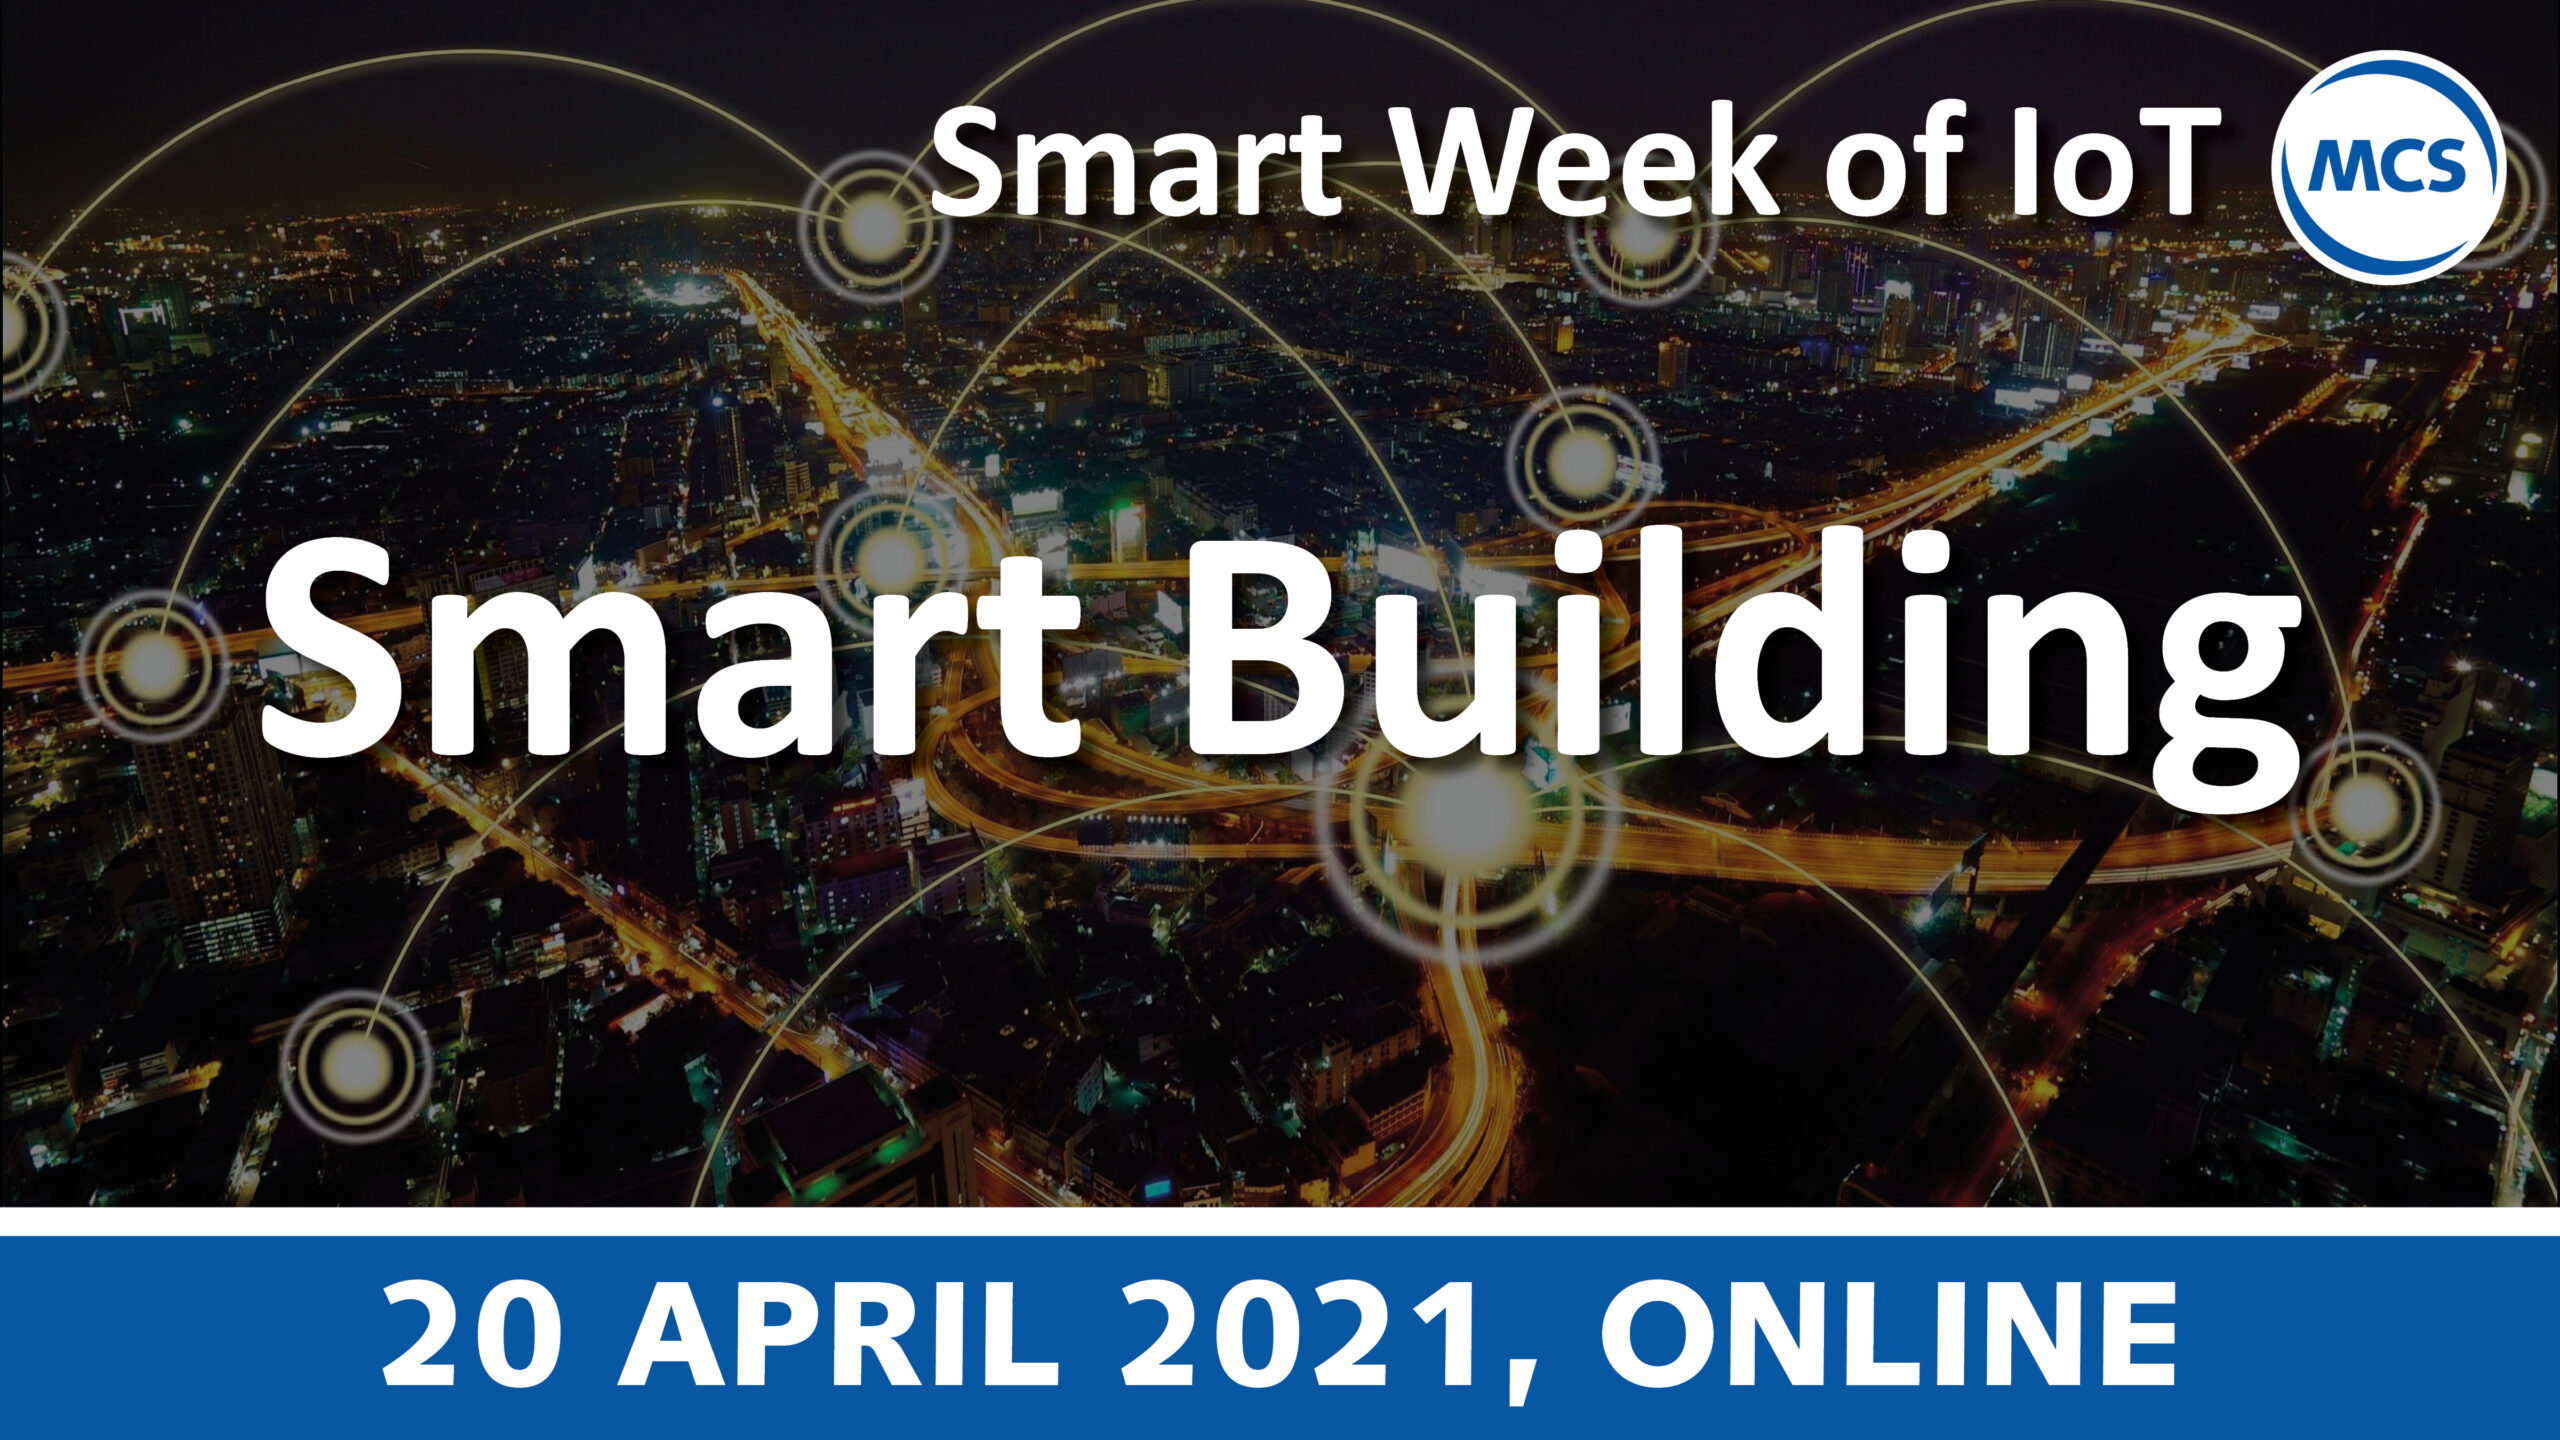 Smart Building – Smart Week of IoT | 20 april 2021 | Pushing the limits of communication technology | MCS